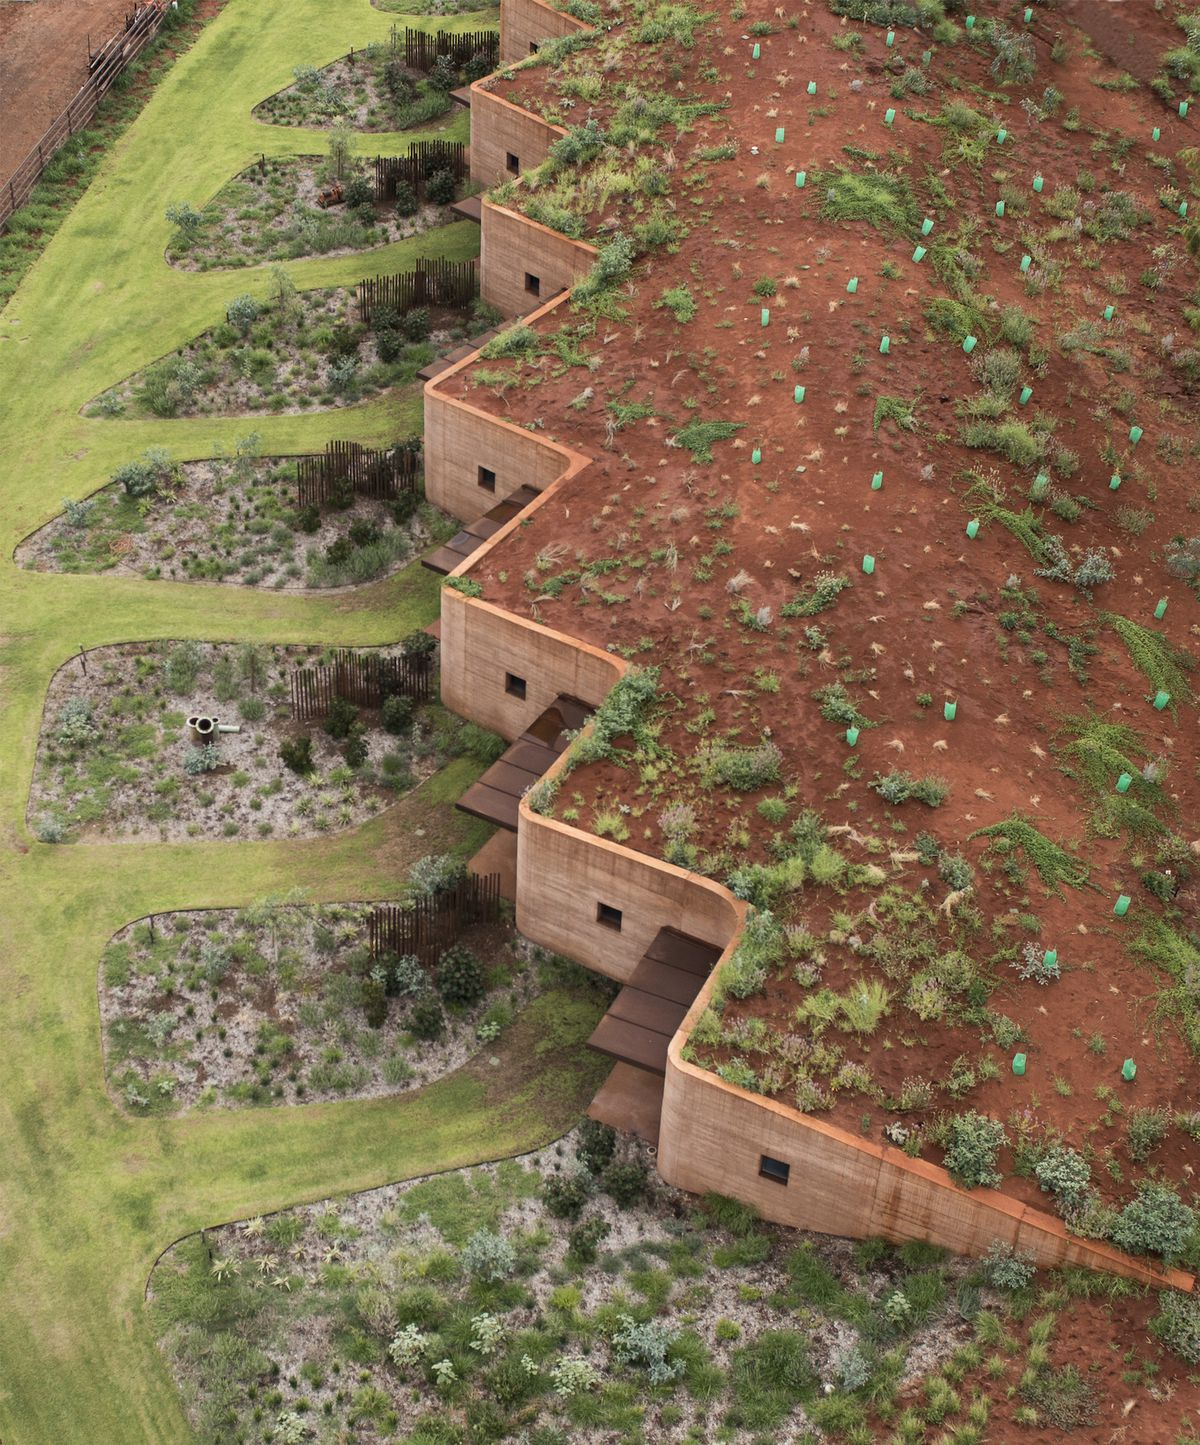 A zig-zagging wall made of red earth that's built into a hillside.